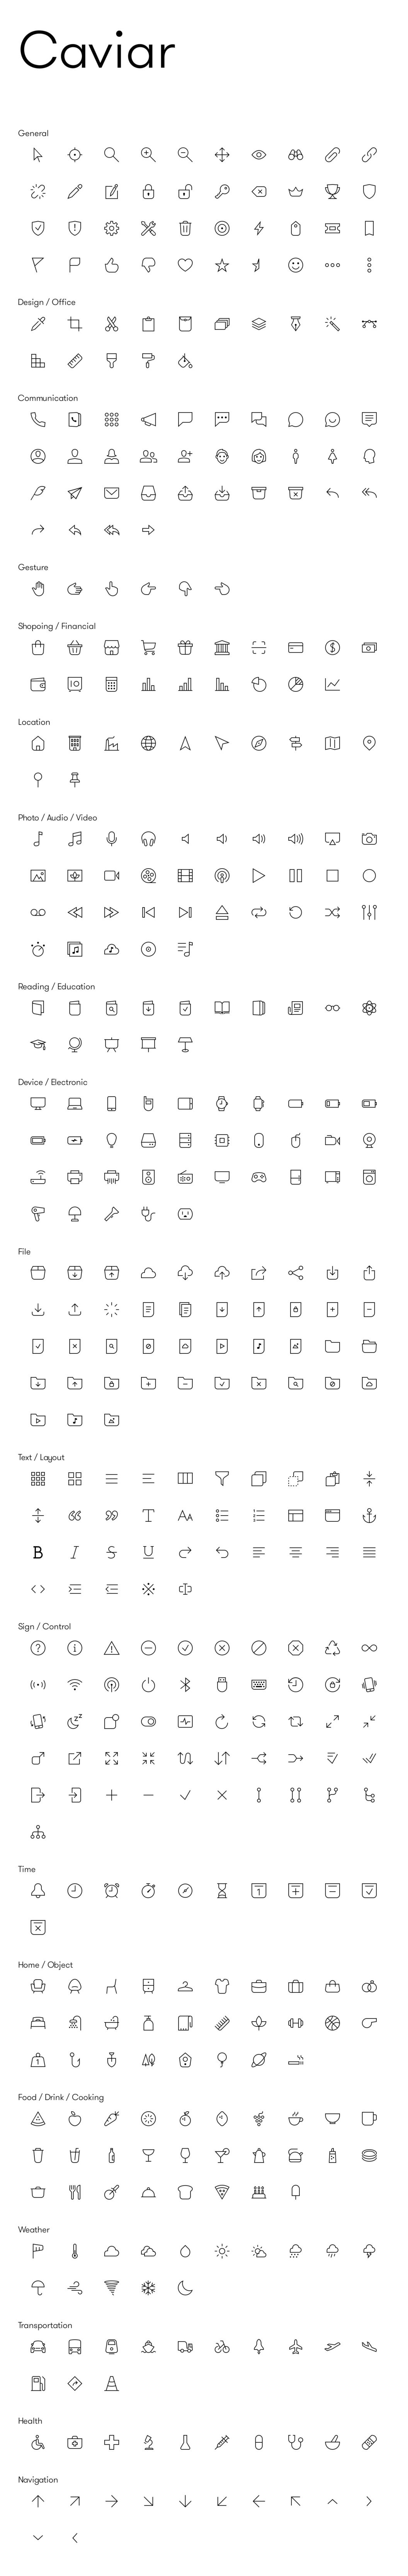 Caviar is a well-crafted icon set dedicated to match your exquisite designs. Every single detail in each icon was carefully tuned to present minimalism and elegance. With 450 icons, Caviar provides the most essential icons for your app, web and graphic design.